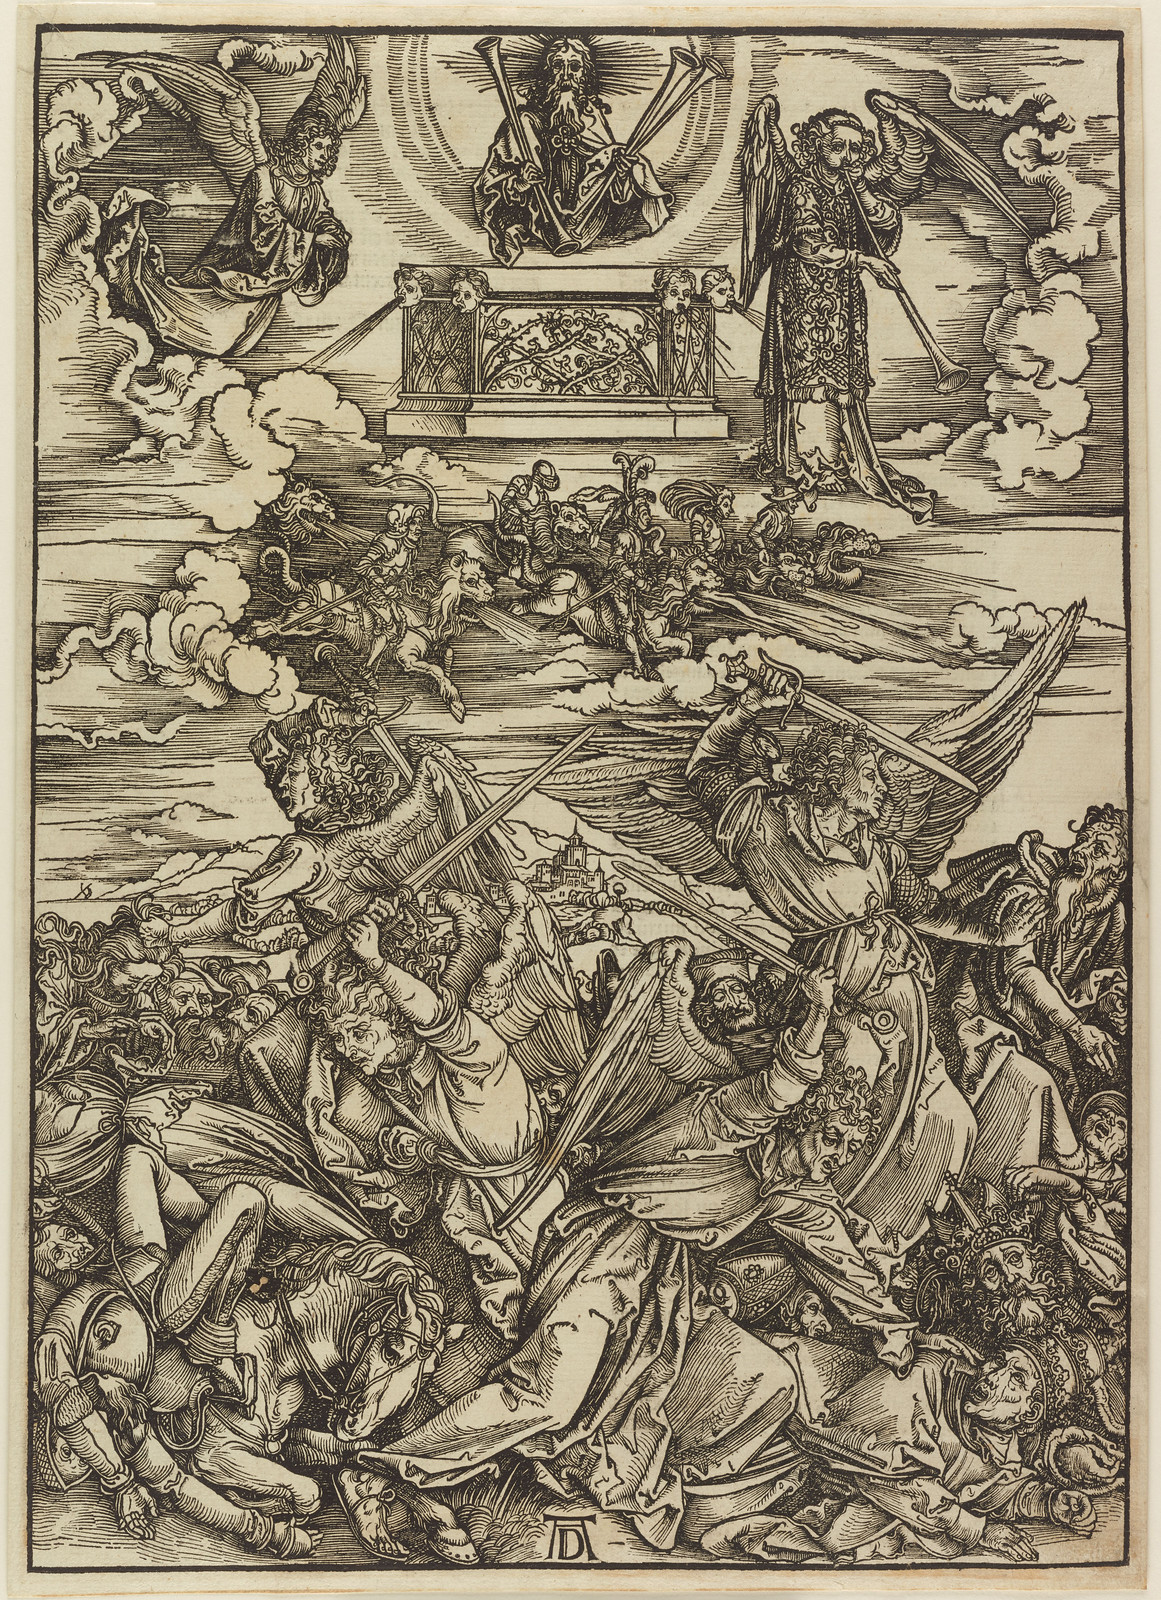 Albrecht Dürer - Four avenging angels., Plate eight of fifteen from the Latin edition of The Apocalypse series, printed 1511